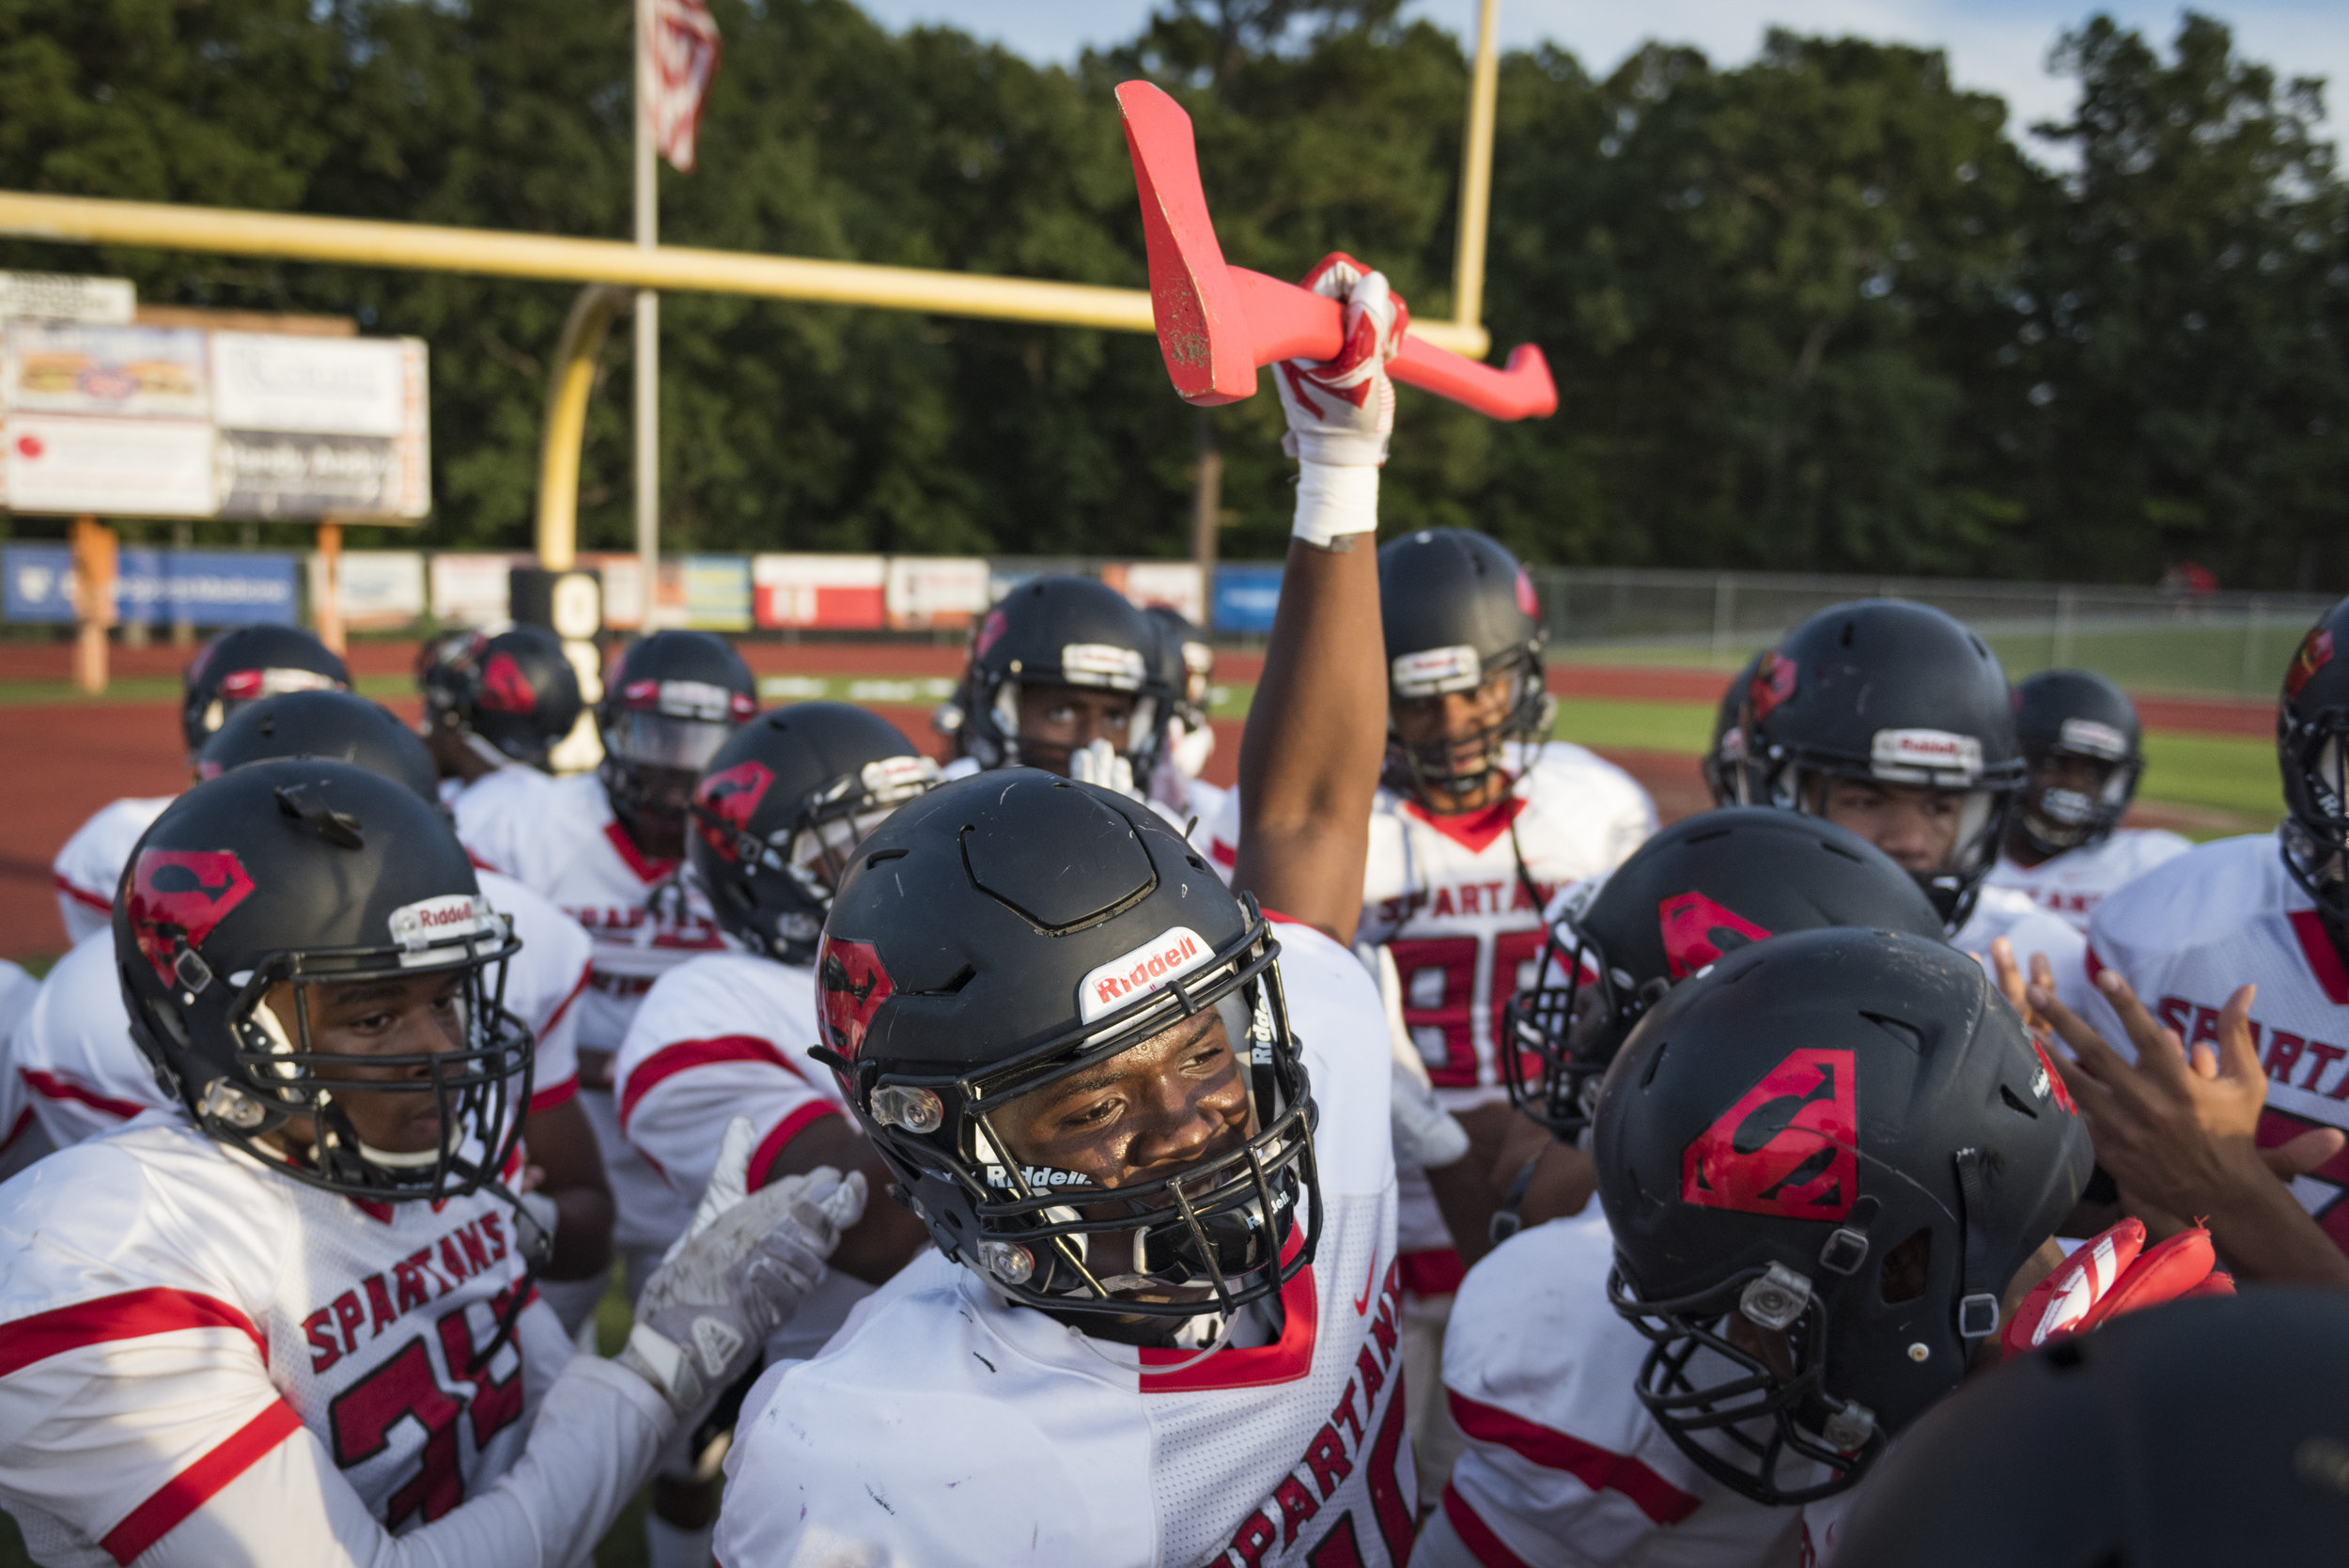 Southern Durham junior linebacker Jaki Brevard raises the team axe before the Spartan's game against Orange High School in Hillsborough, North Carolina. The team captain usually carries the axe before games.